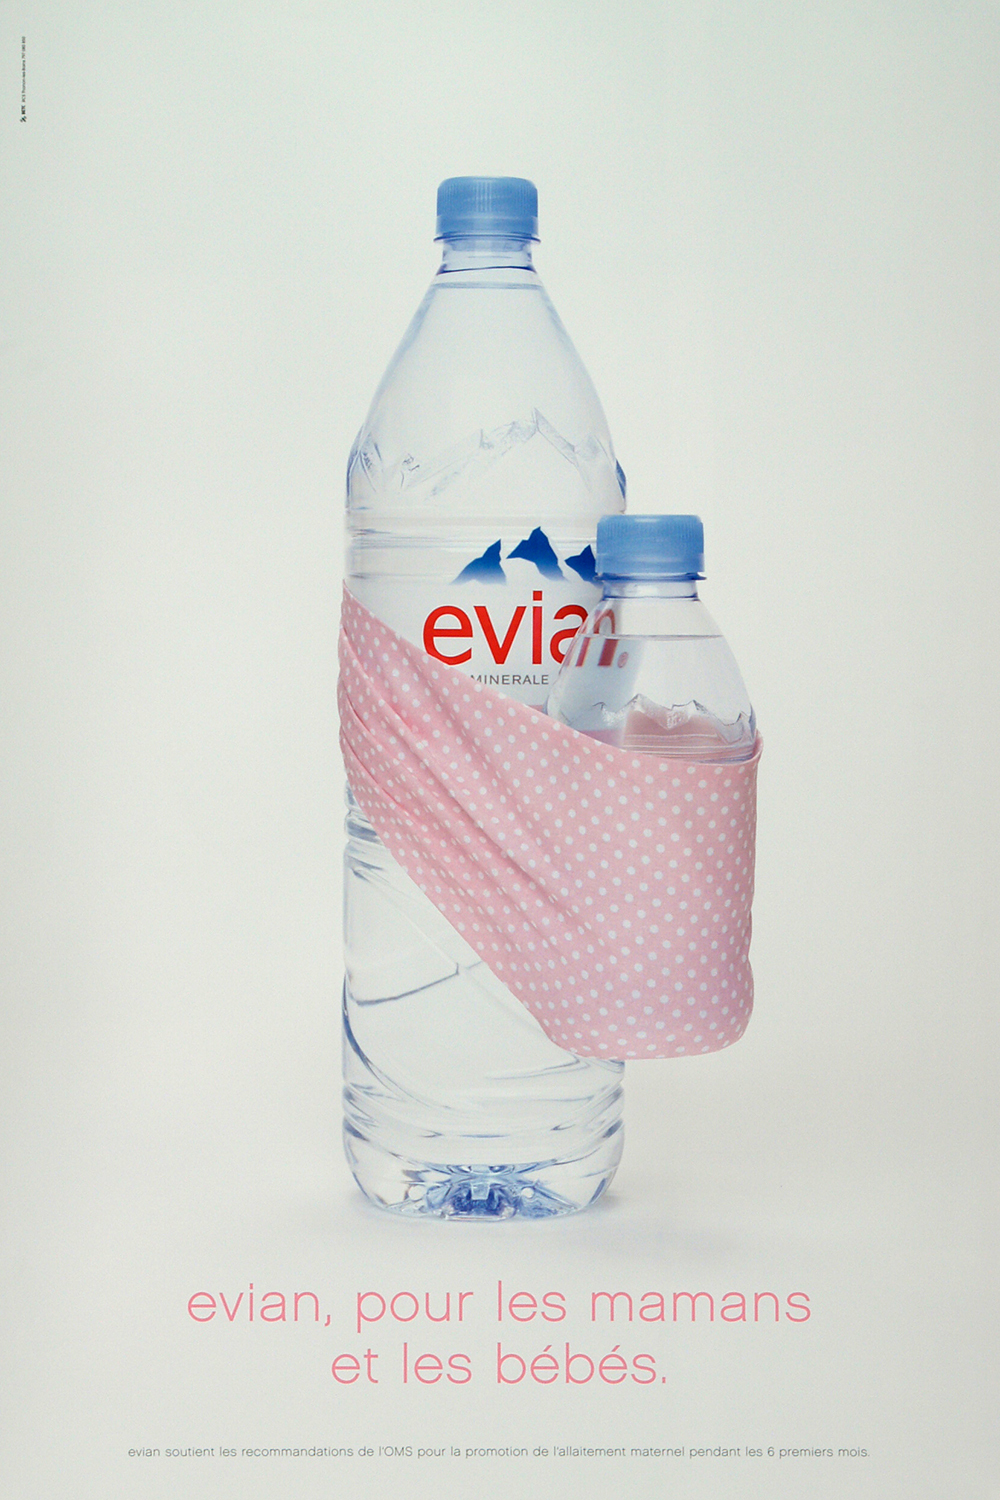 evian-publicite-marketing-eau-mamans-bebes-enfants-agence-betc-paris